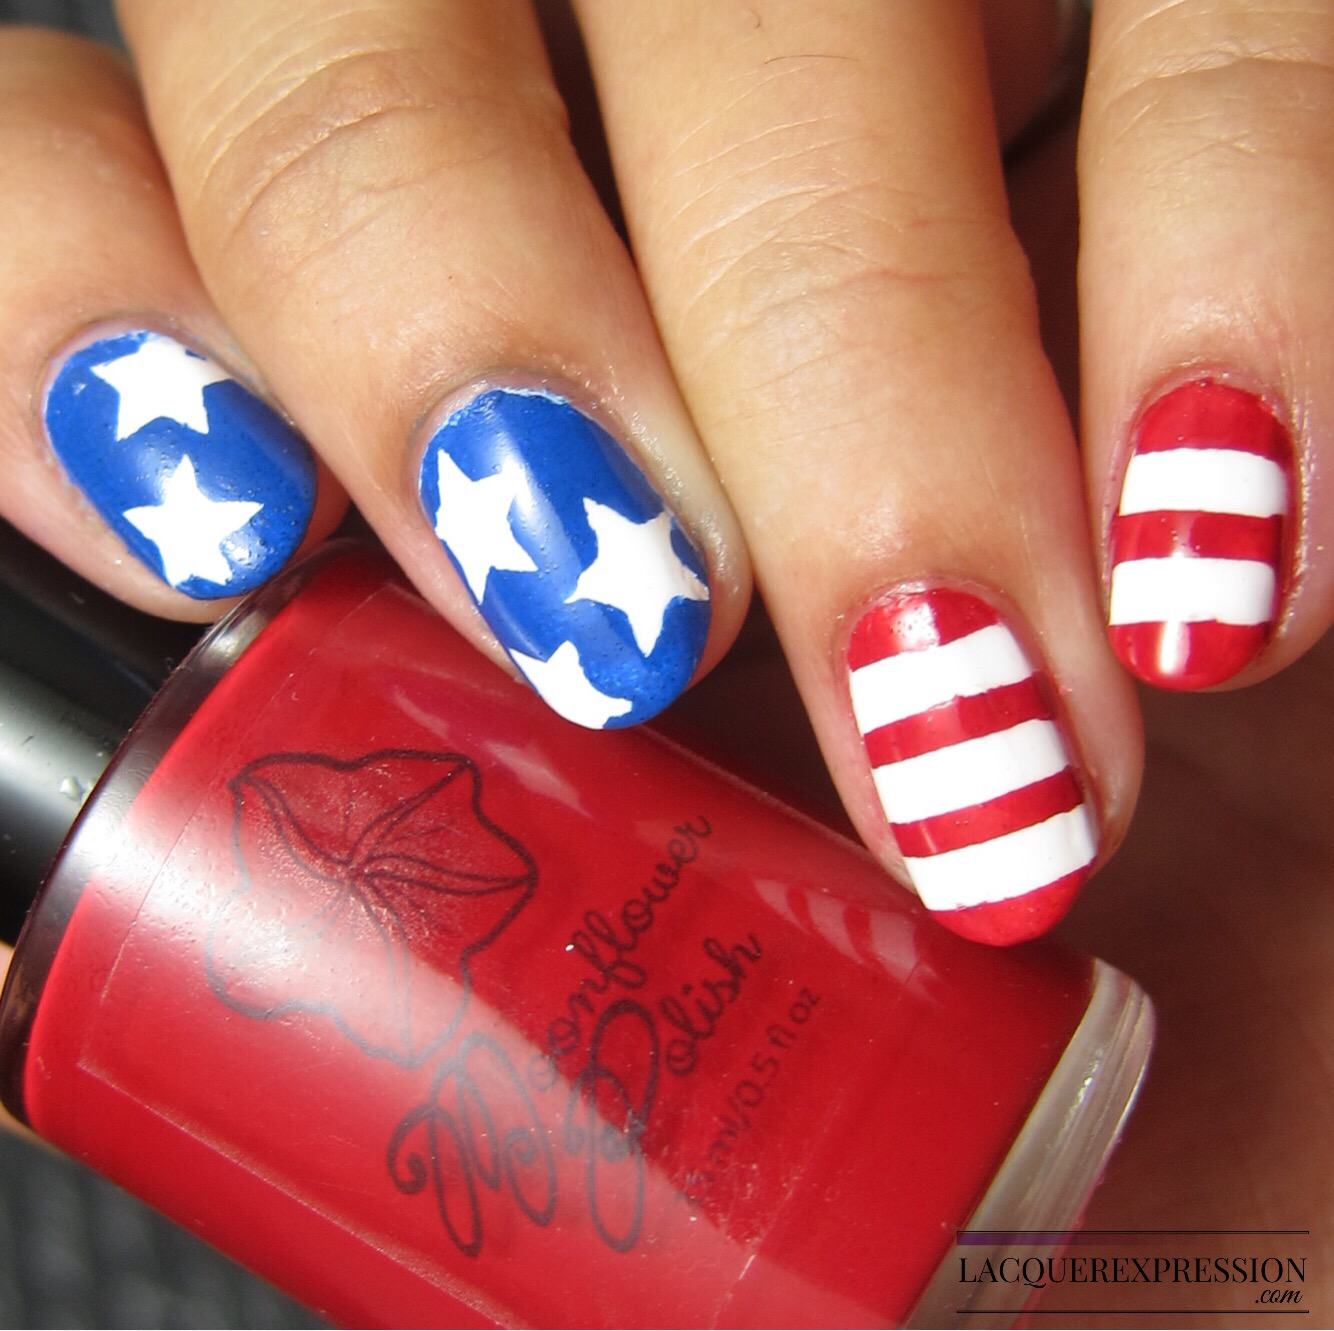 4 Simple Nail Art Looks for July 4th 2017 - LacquerExpression